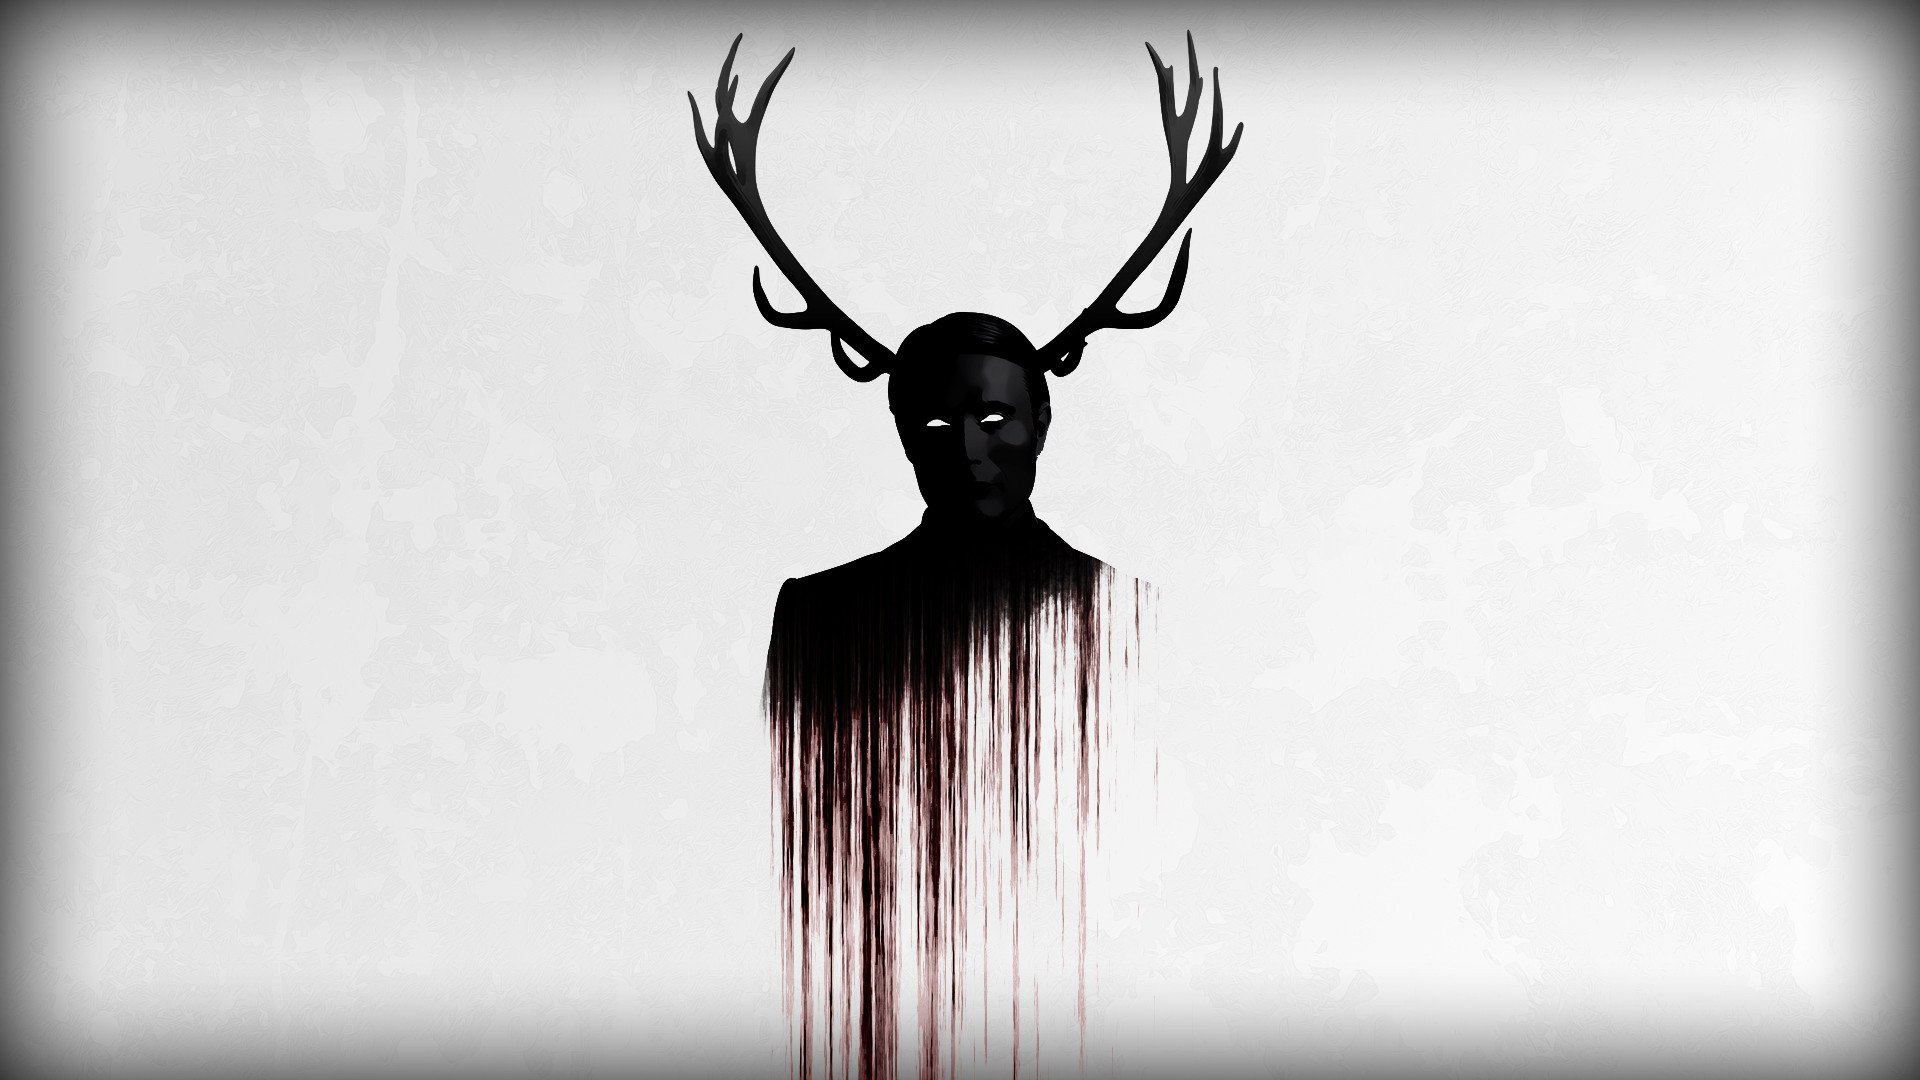 128 Hannibal HD Wallpapers Background Images 1920x1080